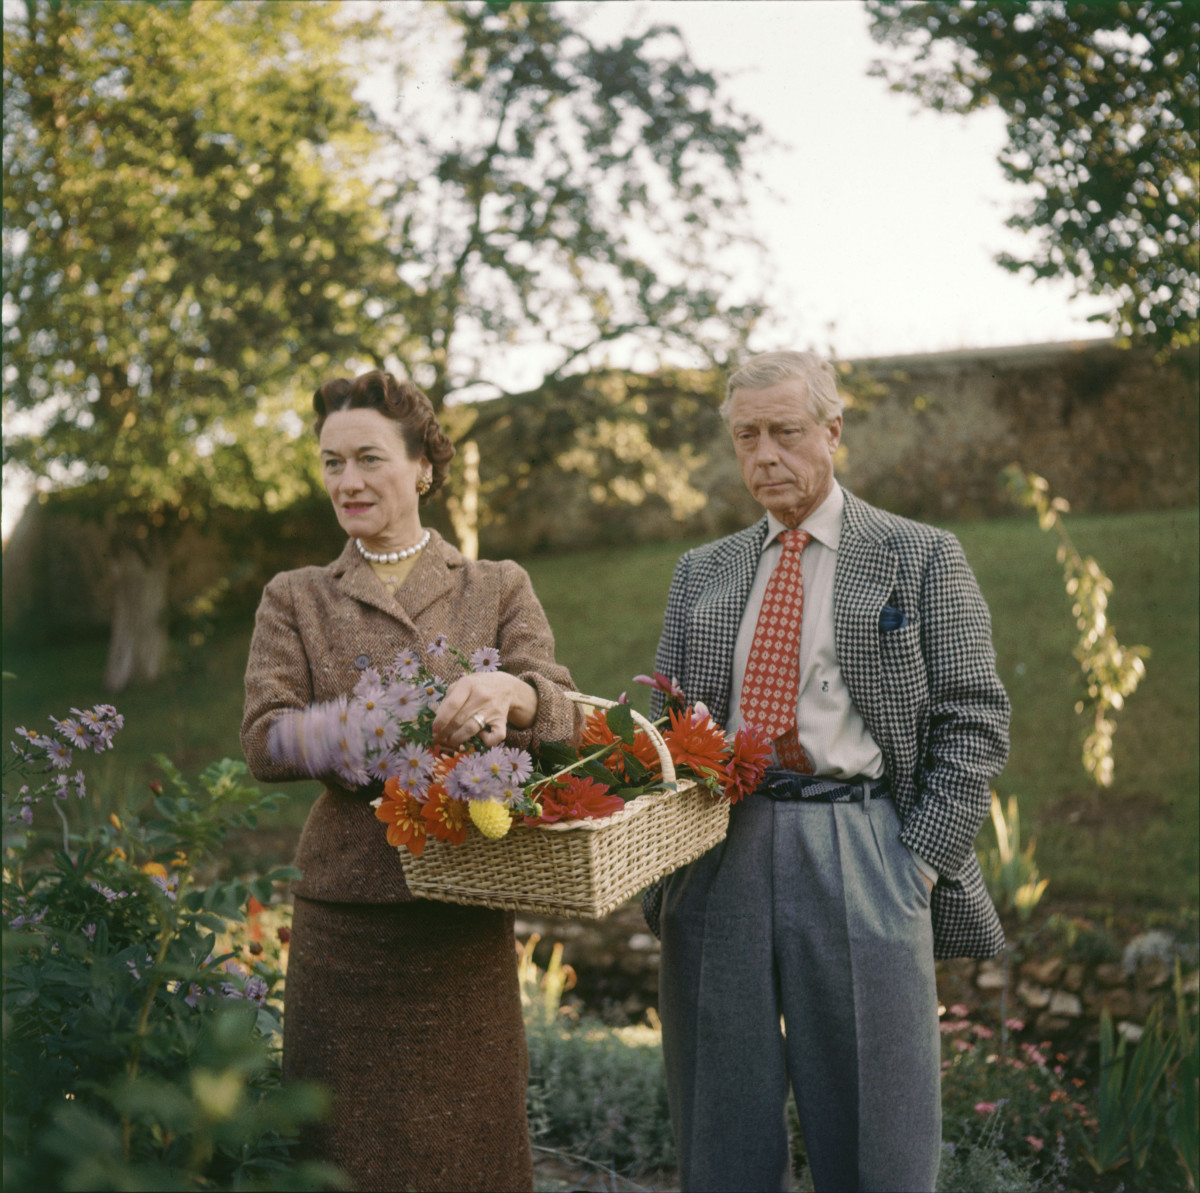 The Duchess and Duke of Windsor pick flowers on the grounds of their home, la Moulin de la Tuilerie, in the commune of Gif-sur-Yvette, outside of Paris, France, 1955.